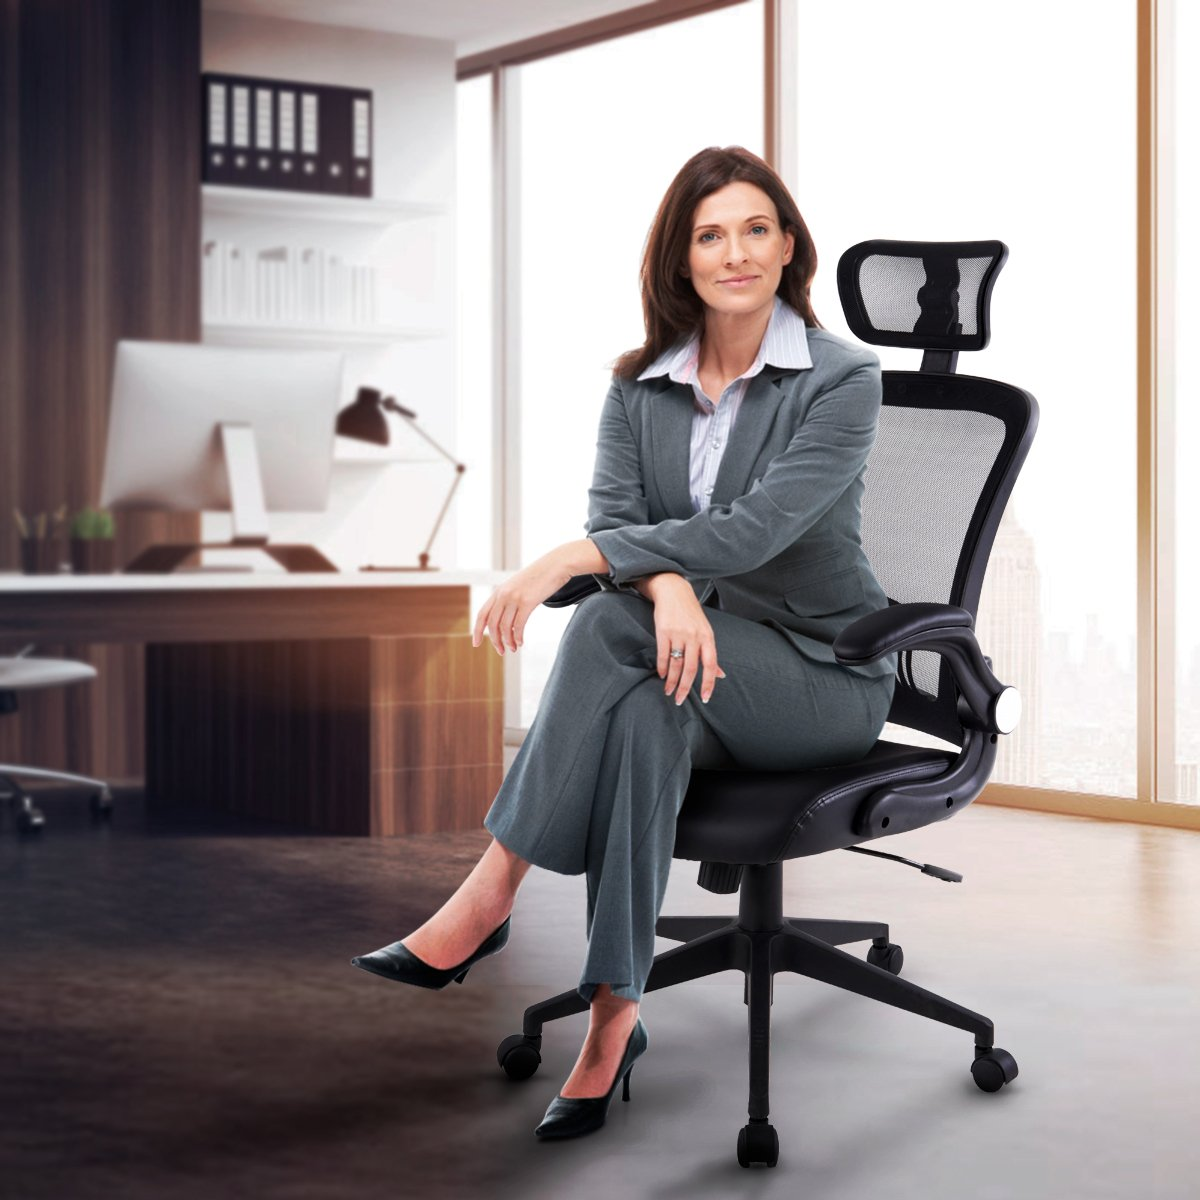 LCH Ergonomic High Back Mesh Office Chair with Bonded Leather Seat &Flip-up Arms,Adjustable Headrest, Built-in Lumbar Support Computer Desk Task Executive Chair